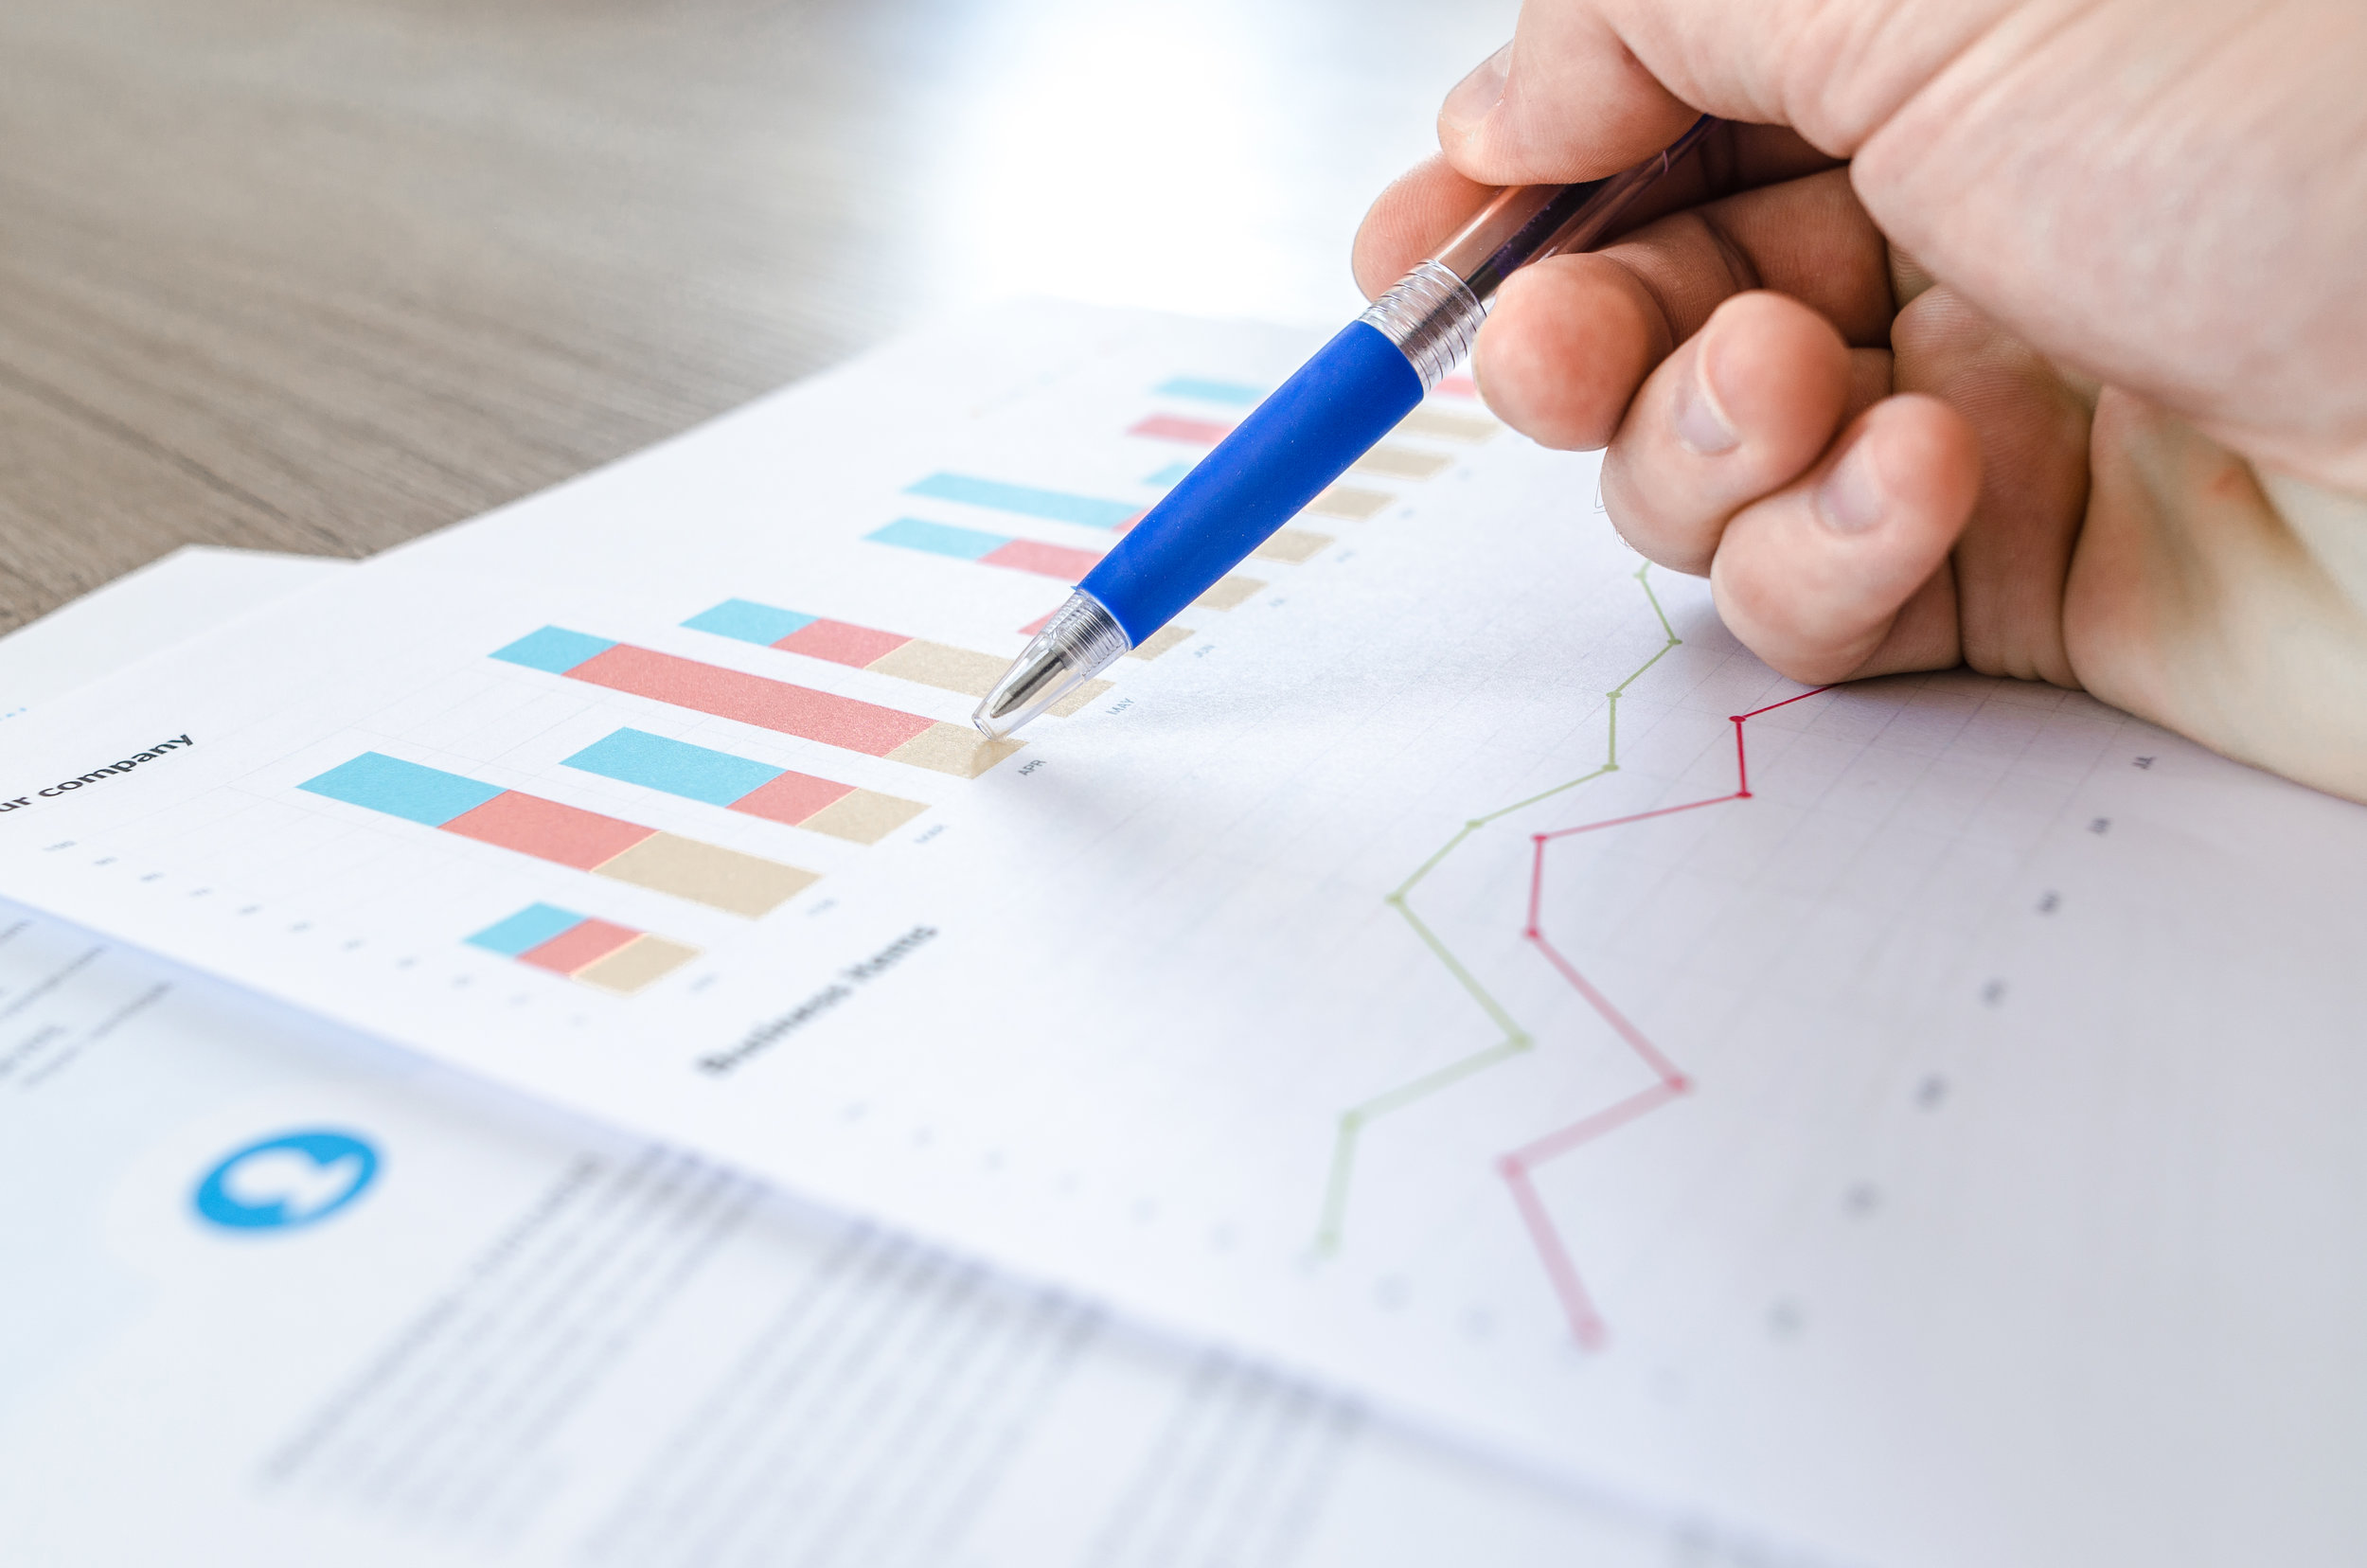 Turn content into a revenue driver on your balance sheet.